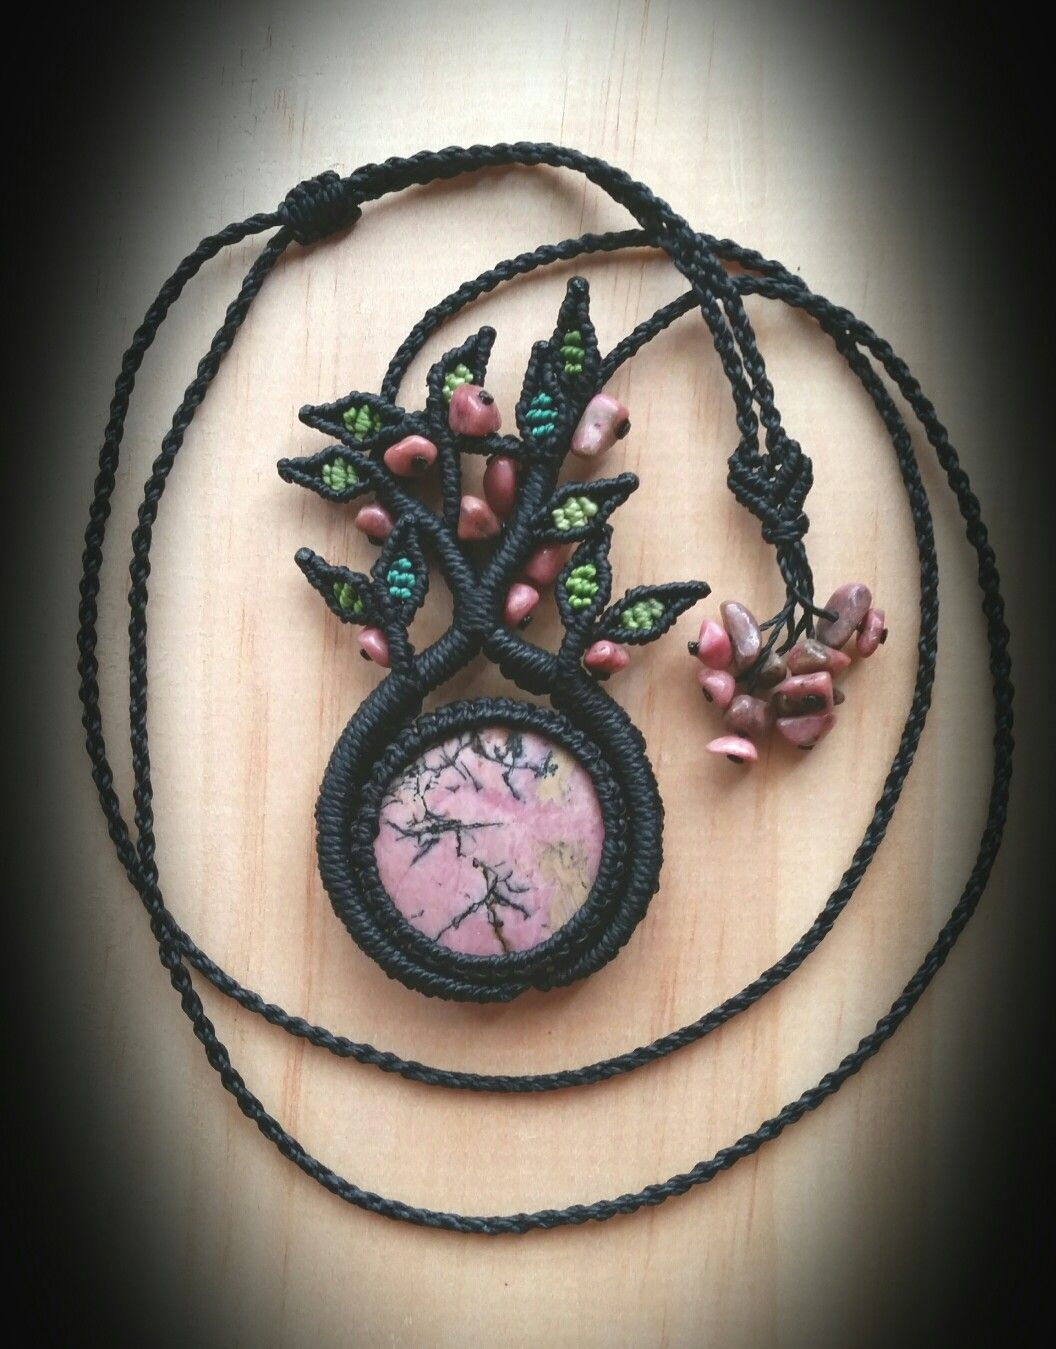 Tree Of Life Necklace With Rhodonite Pendant & Rhodonite